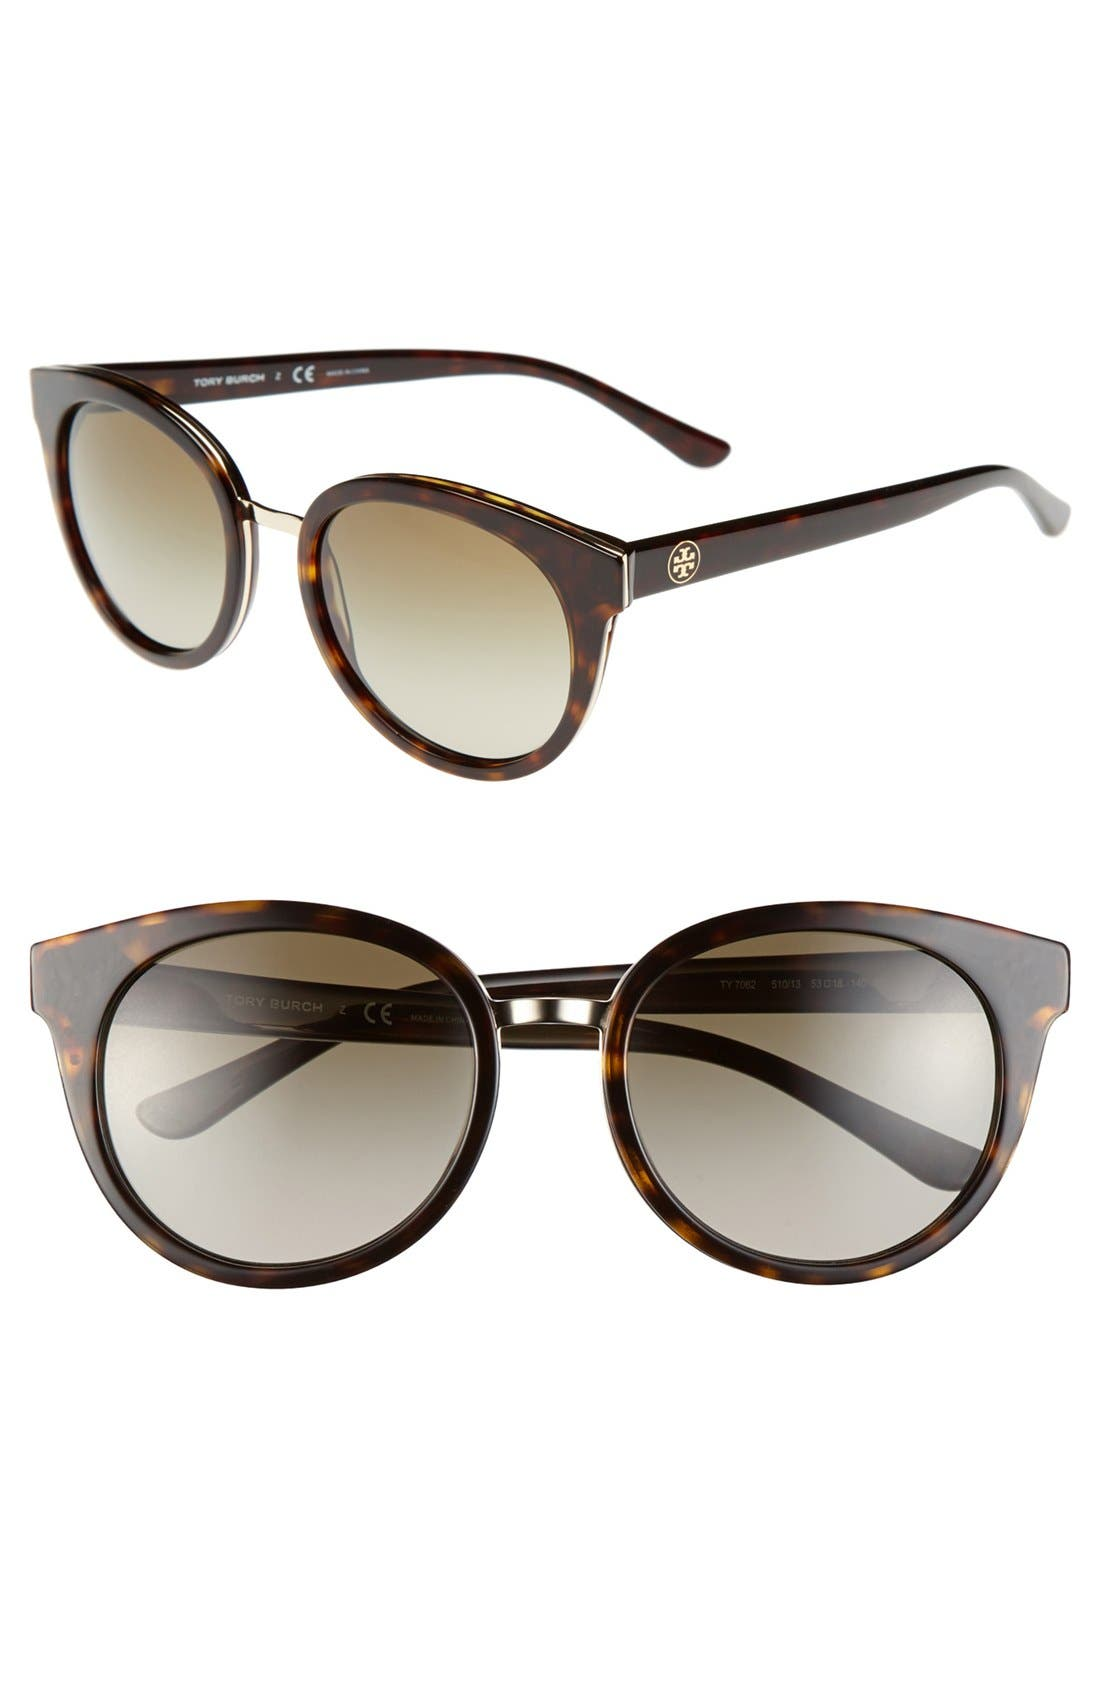 Main Image - Tory Burch 'Phantos' 53mm Retro Sunglasses